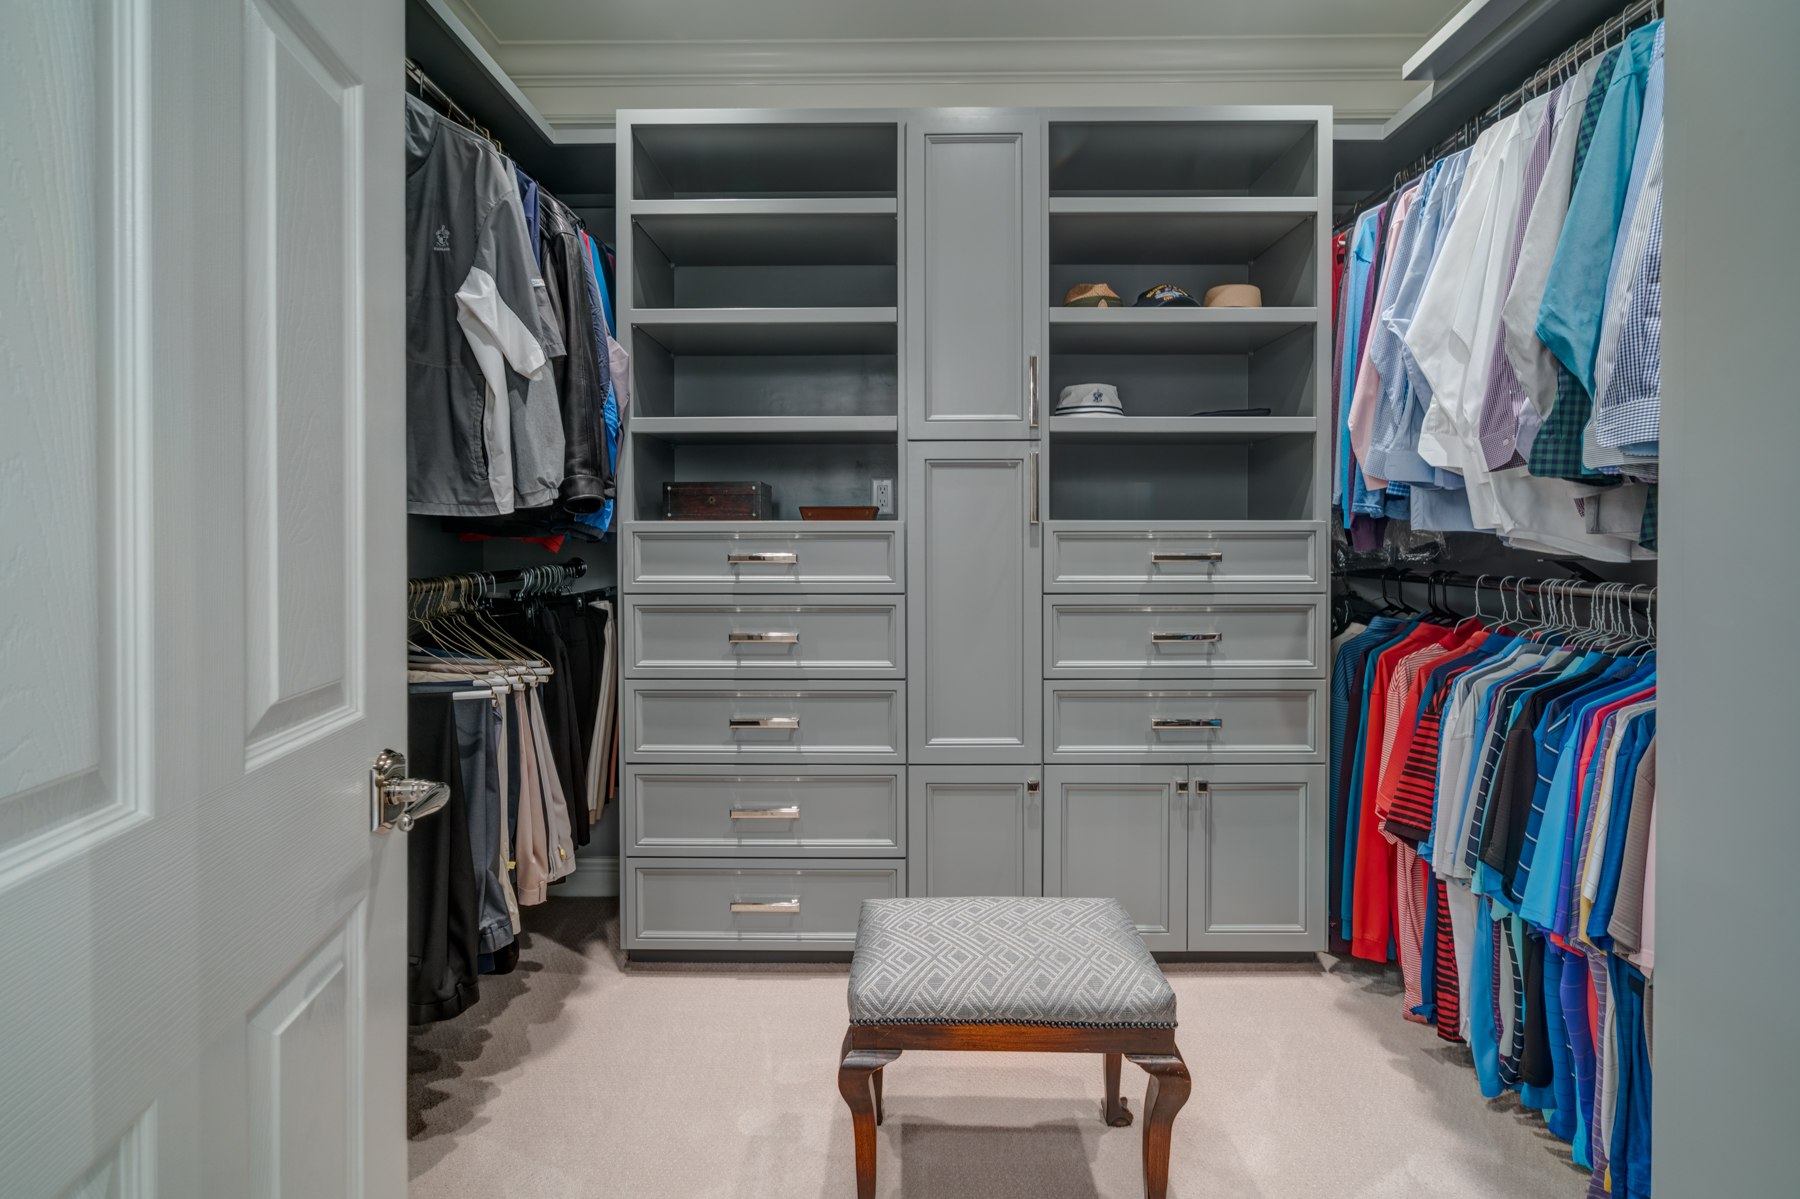 Custom cabinetry in the master closet